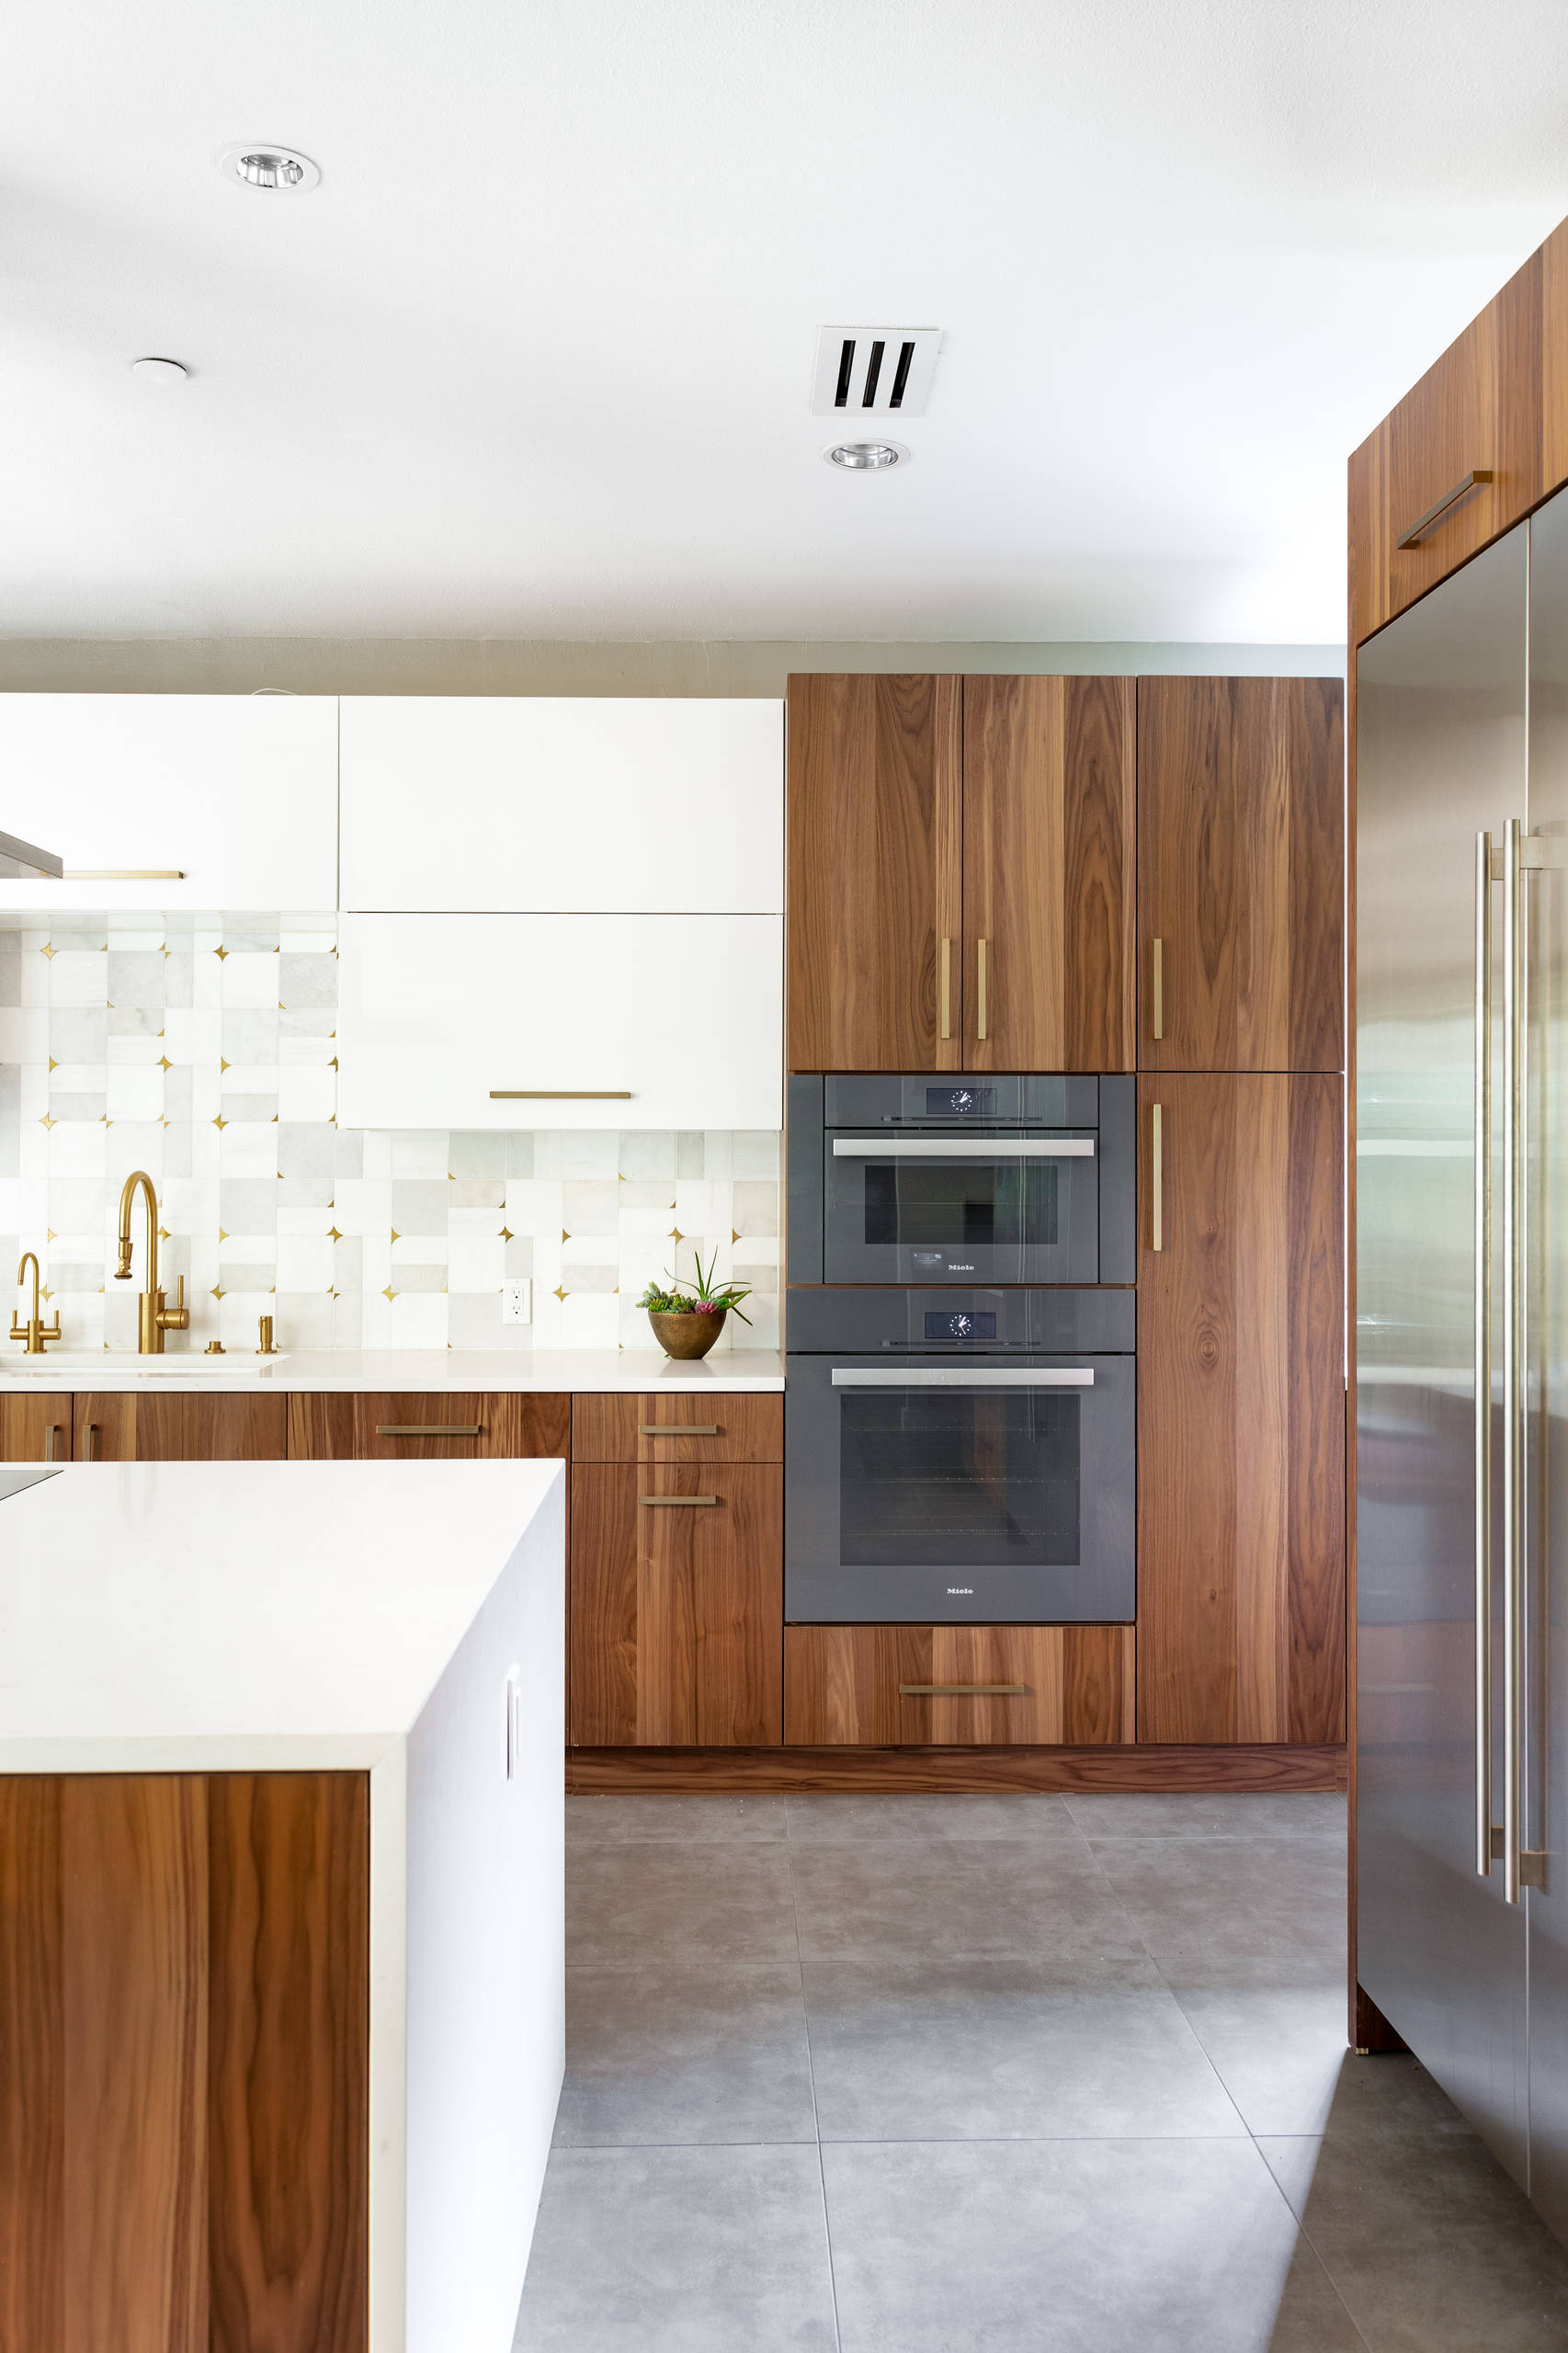 11 Beautiful Huge Kitchen Pictures & Ideas - January, 11  Houzz